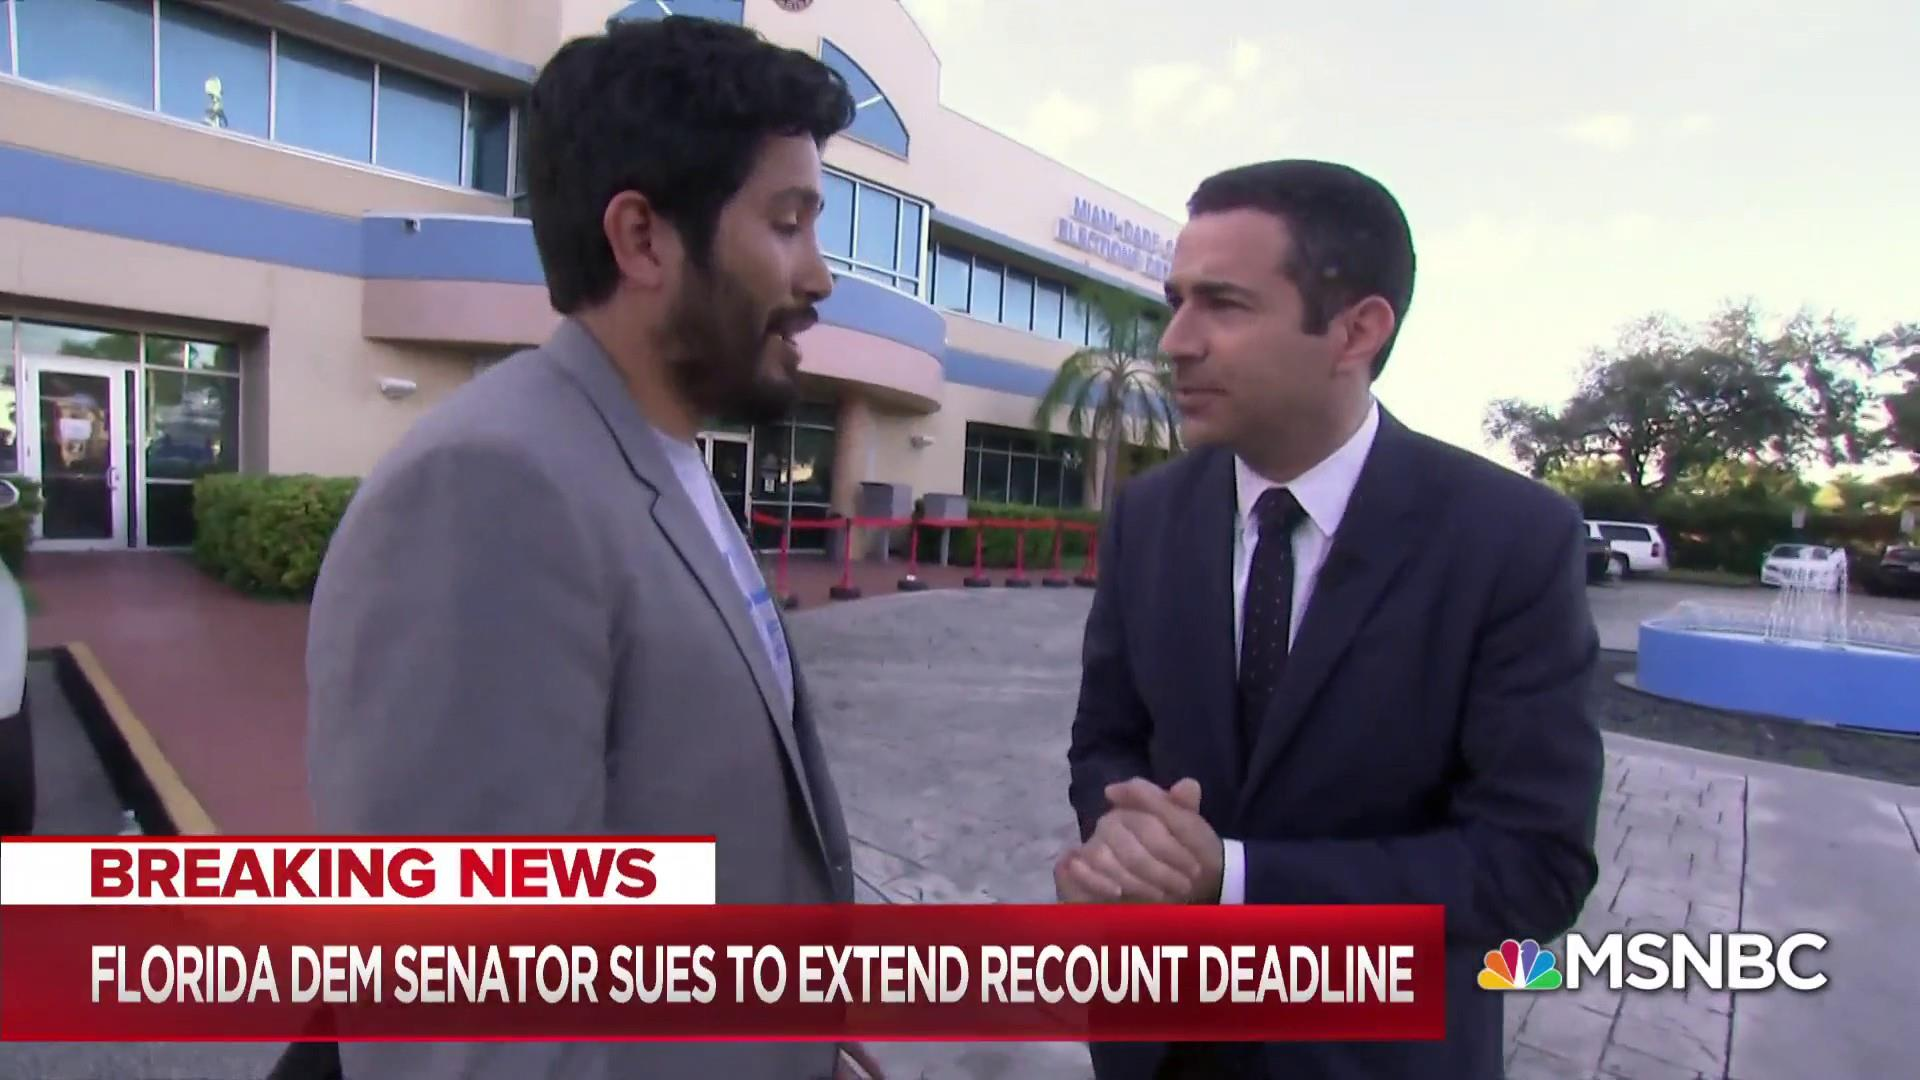 Historic recount: Florida Dem Senator sues to extend deadline